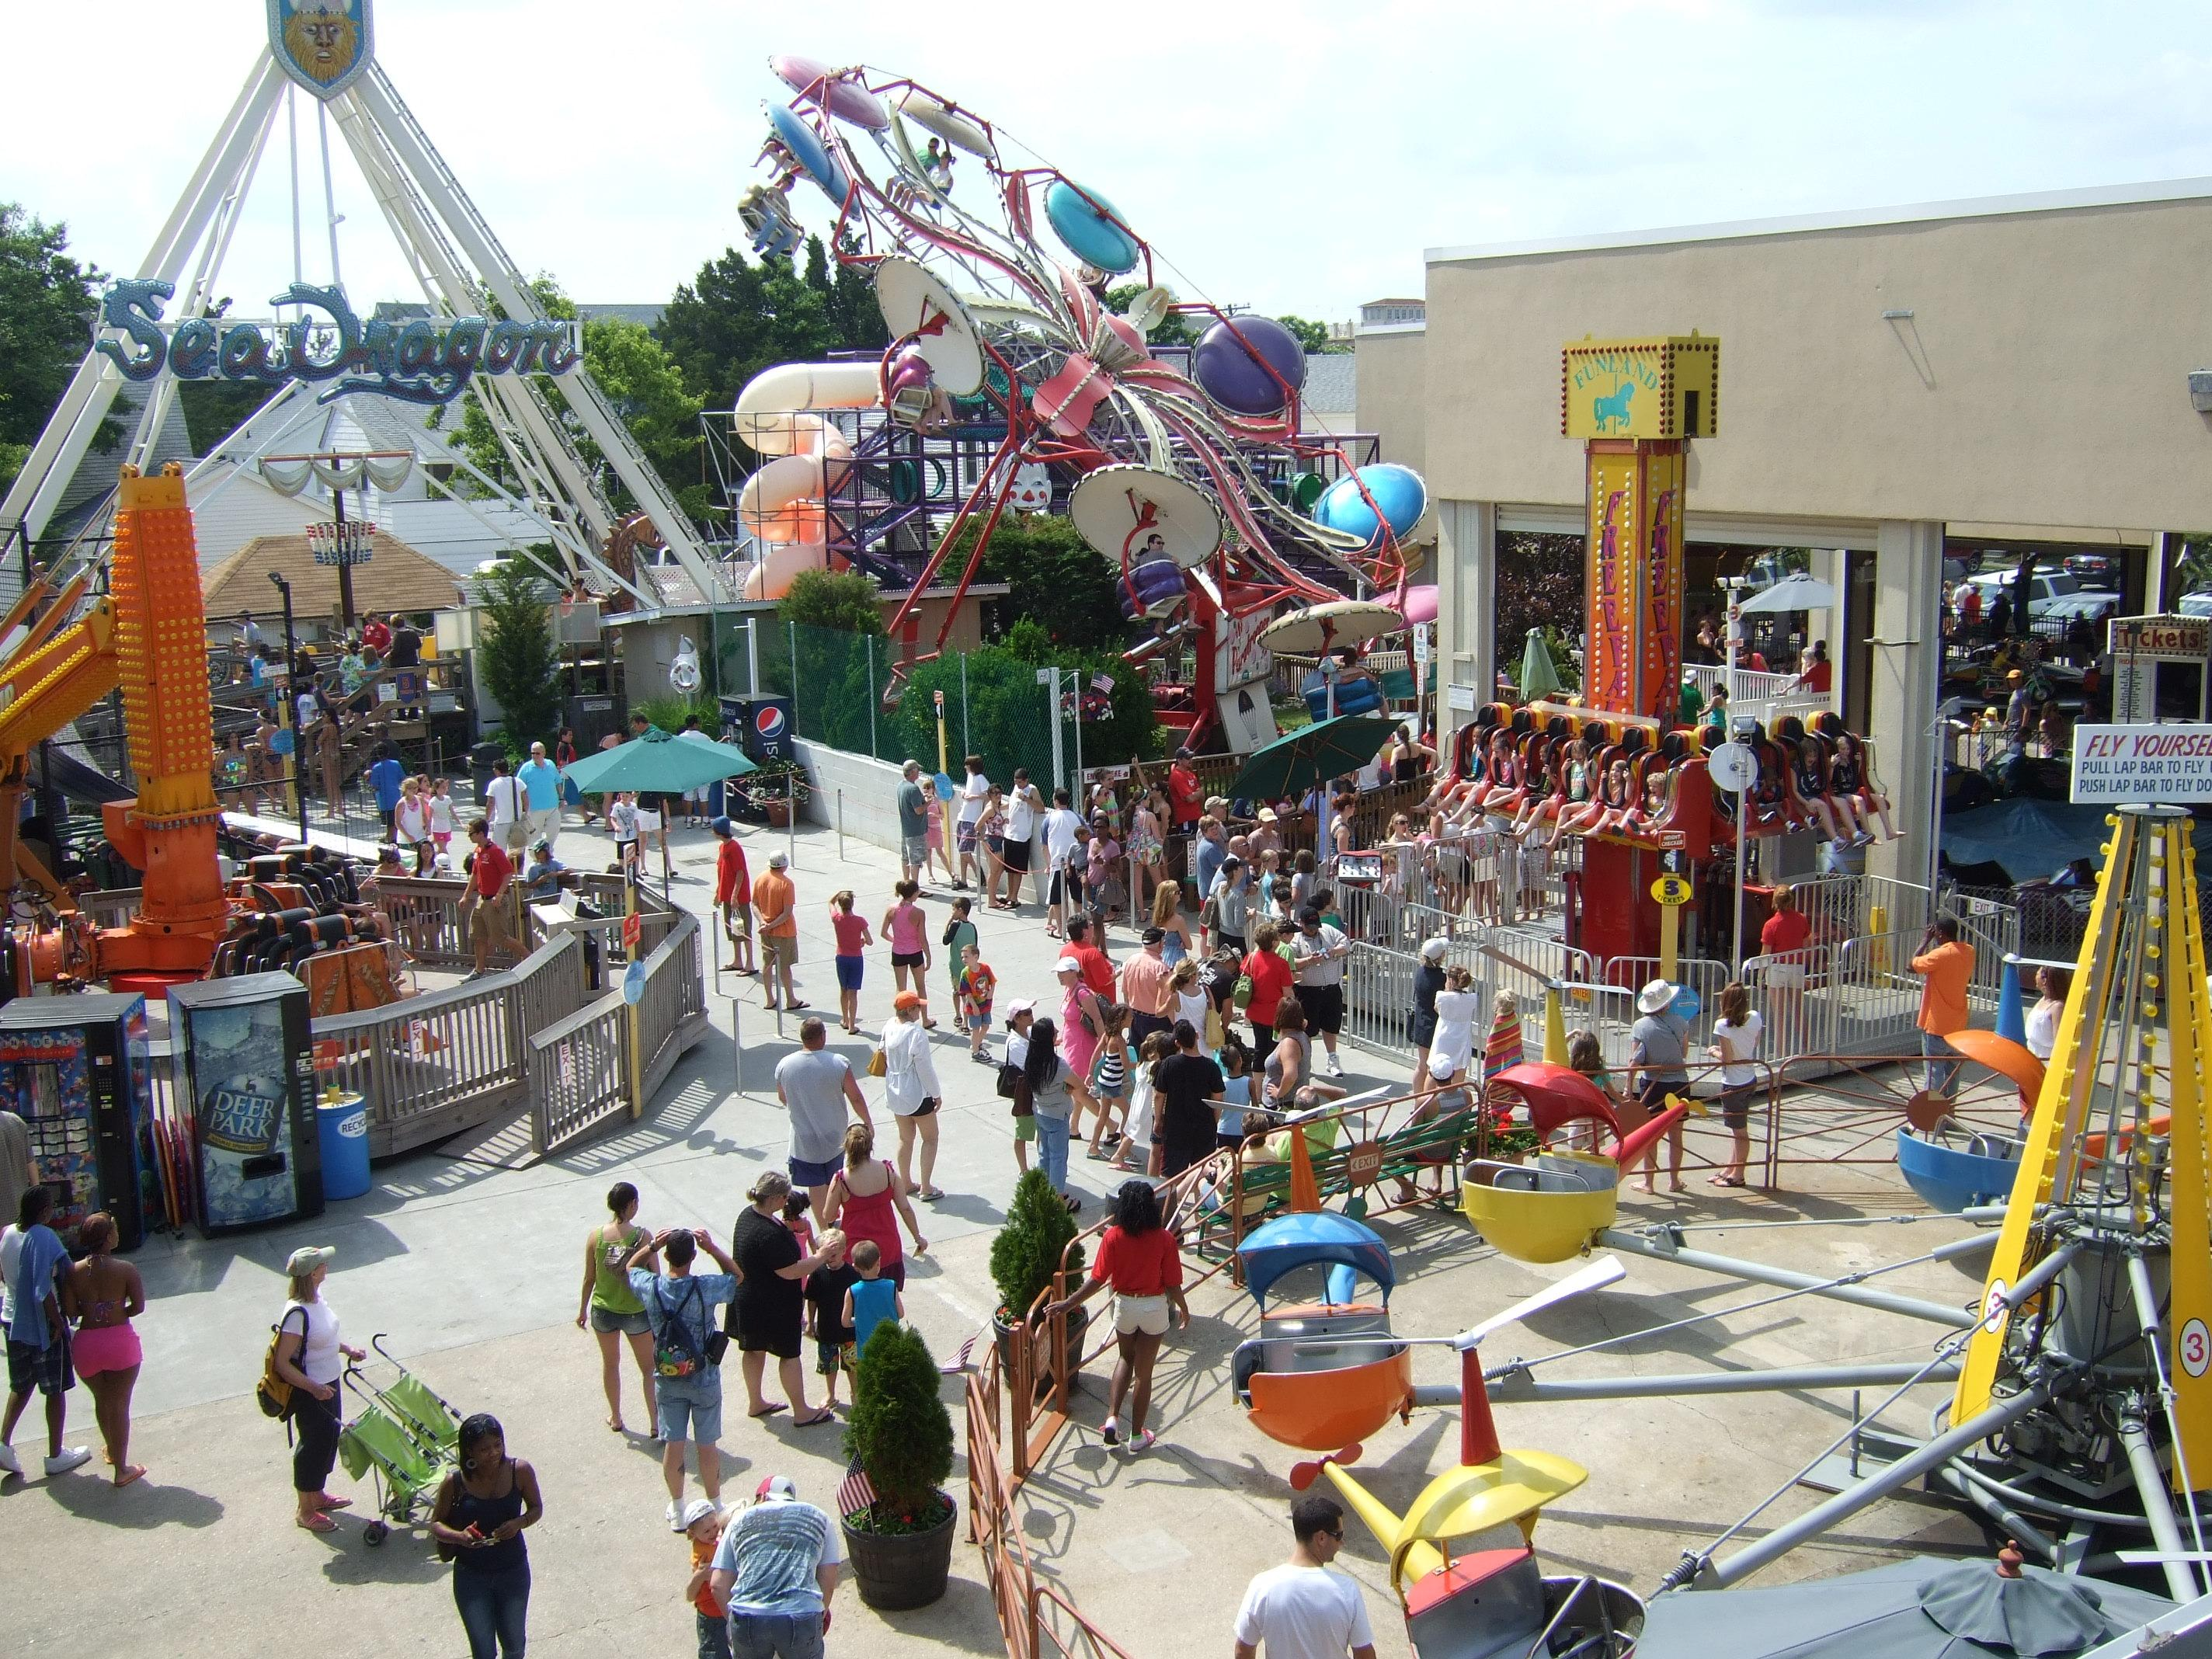 If you're asking yourself what to do, we have three words for you: Funland, Funland and Funland! You don't even need to be a parent of wee ones to appreciate the groovy retro rides or a rousing game of Whac-A-Mole or Skee-Ball. (Image: Courtesy VisitDelaware.com)